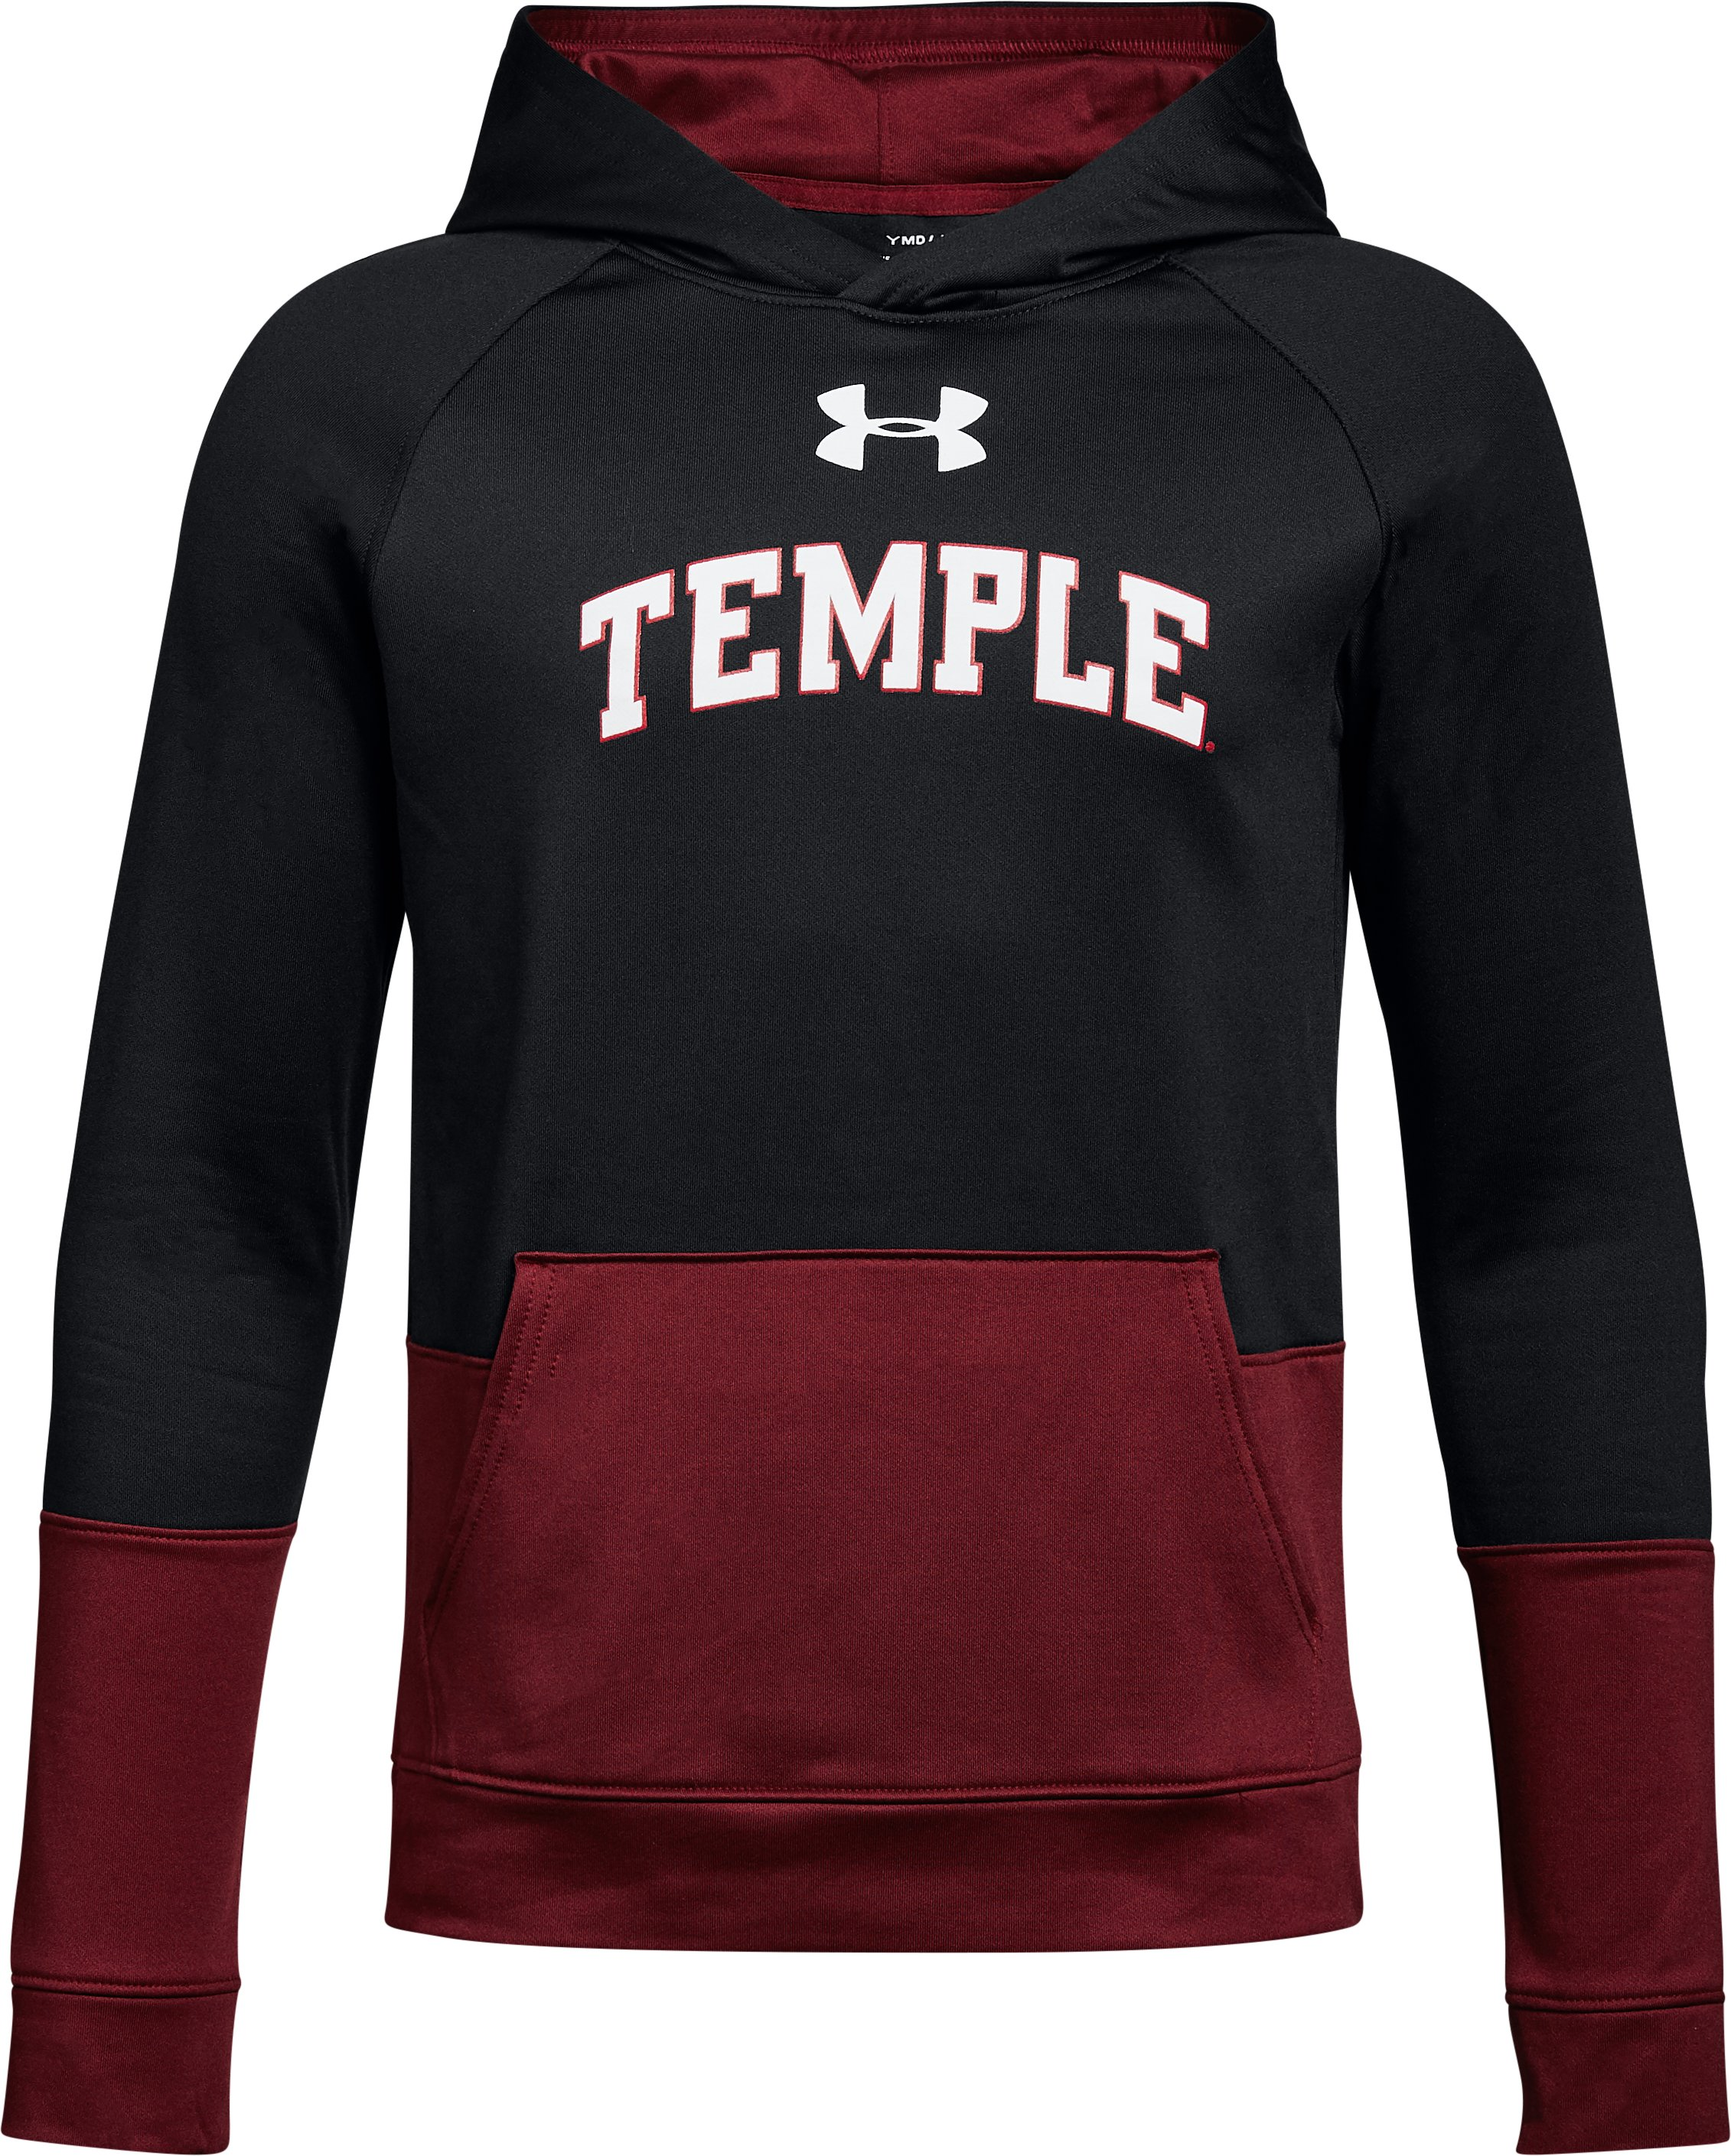 Boys' Temple UA Tech Terry Hoodie, Black